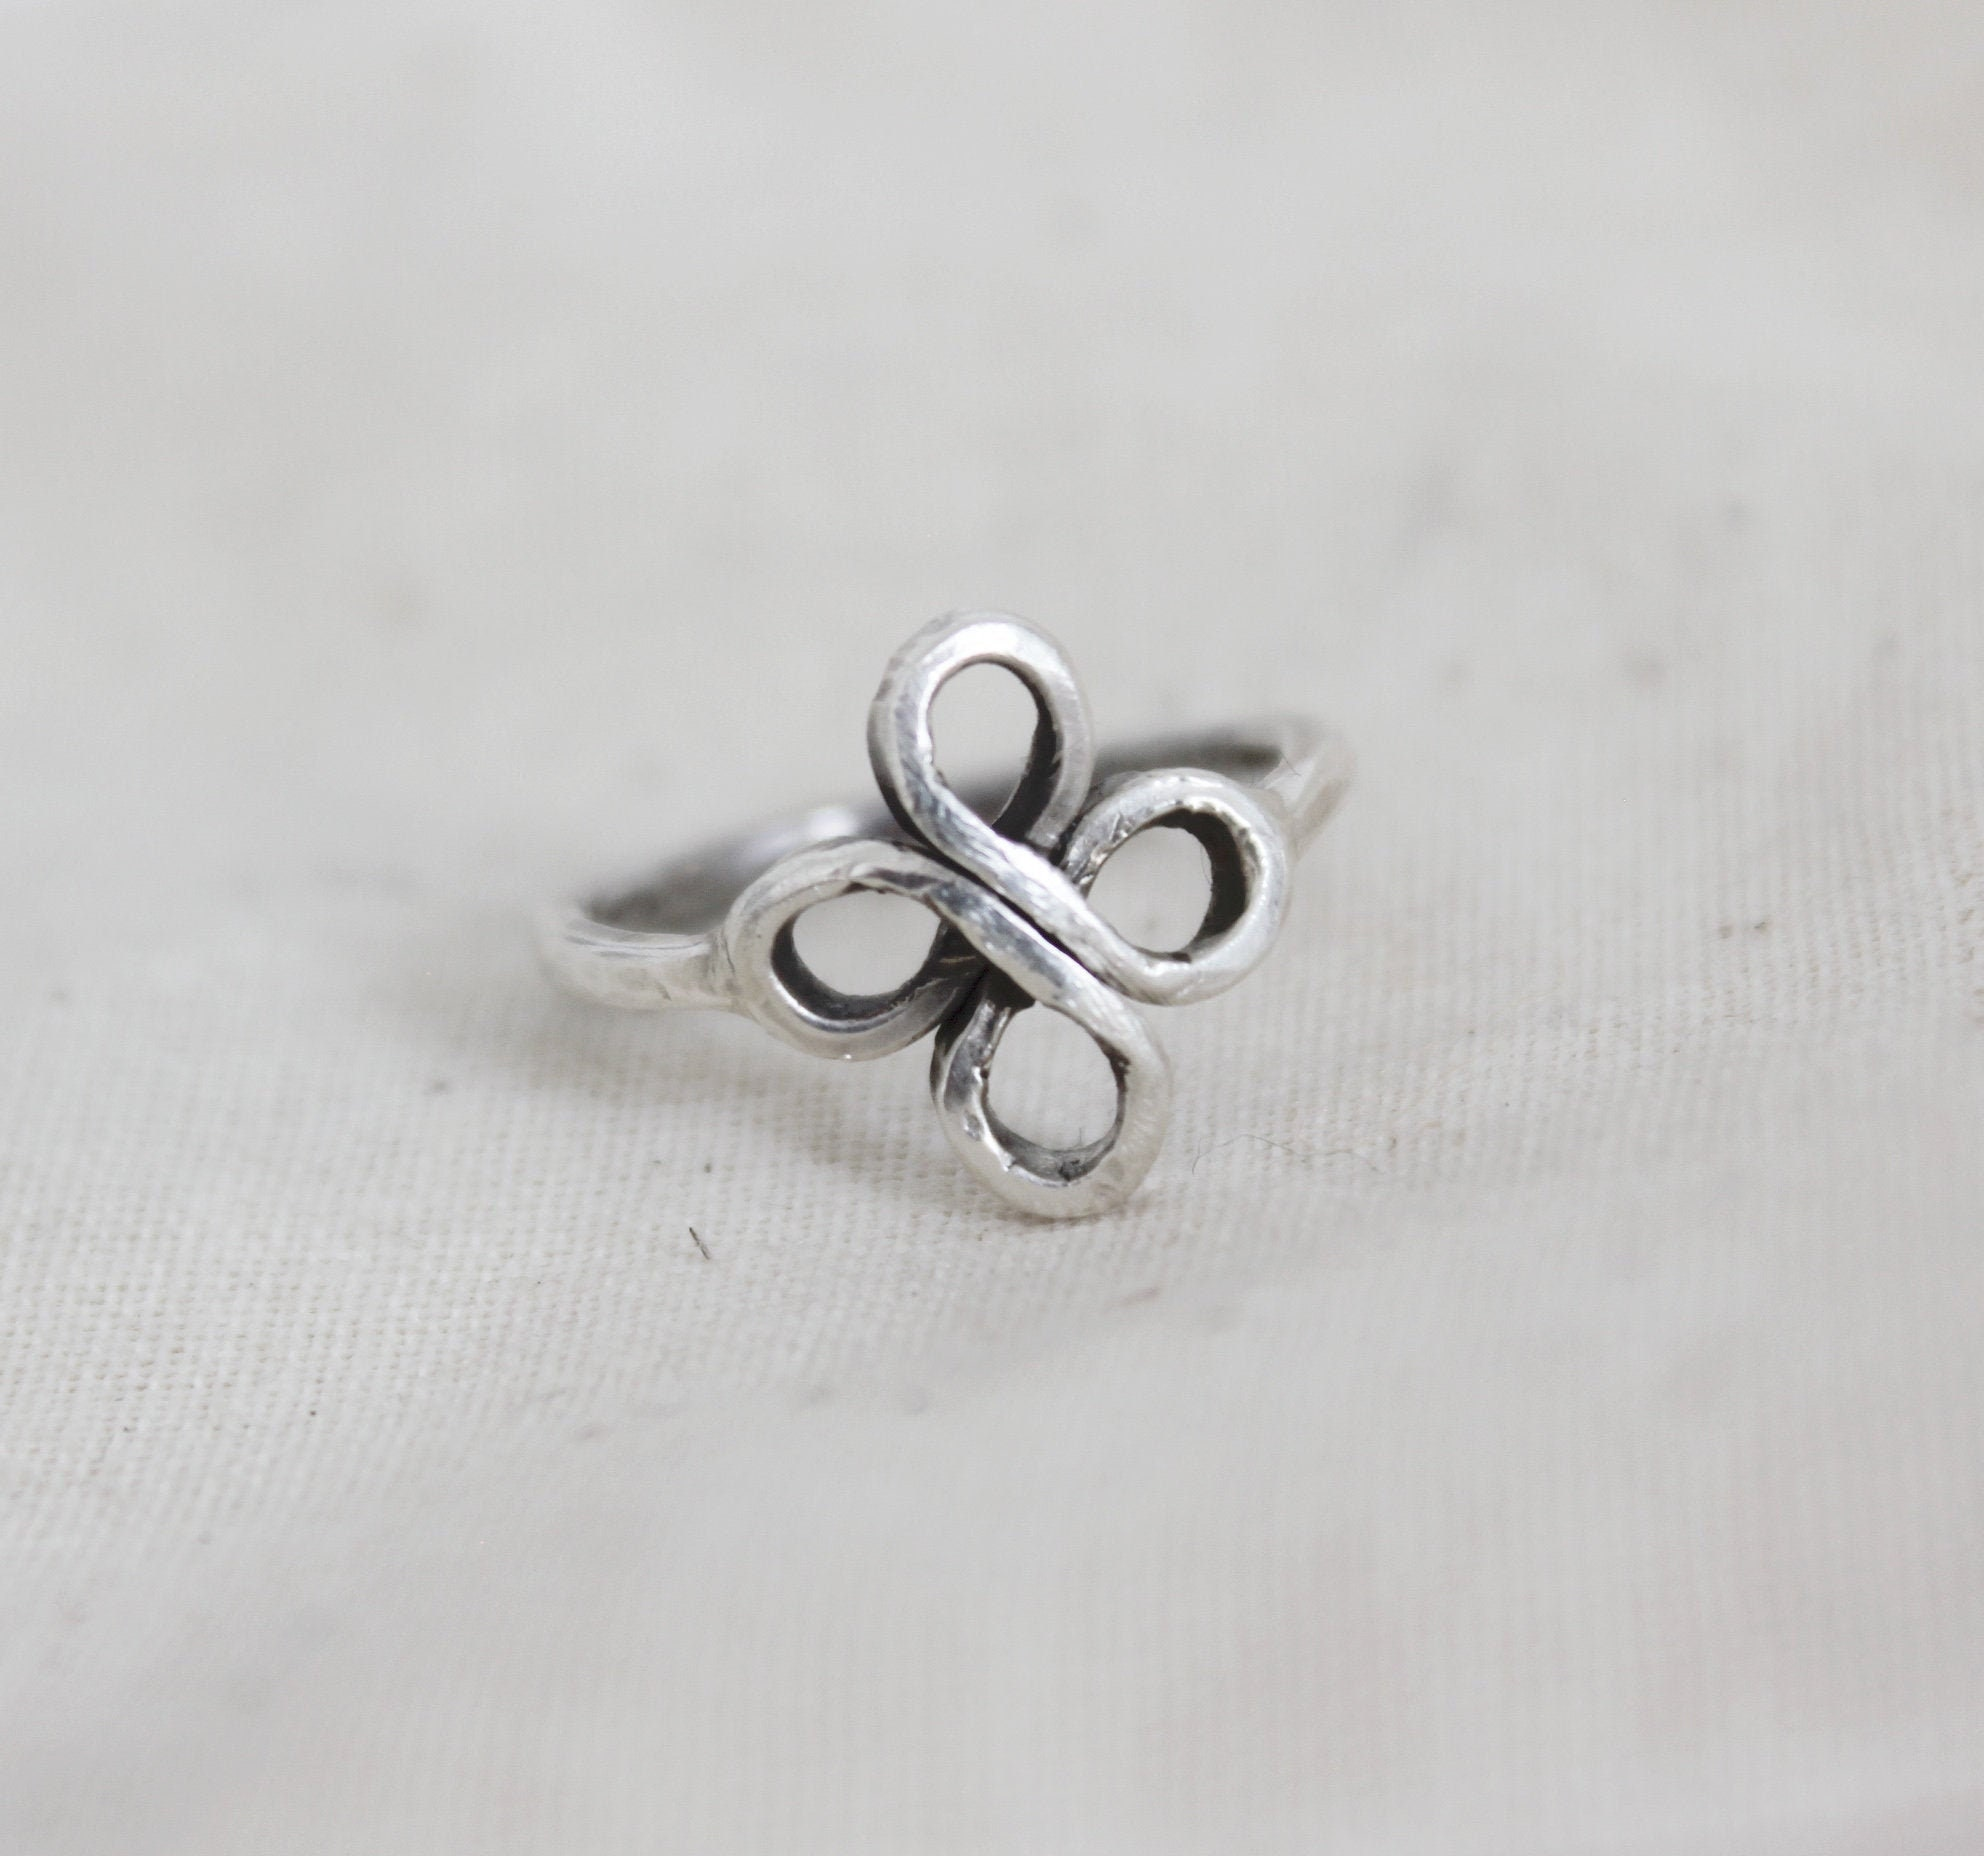 Double Infinity Knot Ring Handmade In Sterling Silver